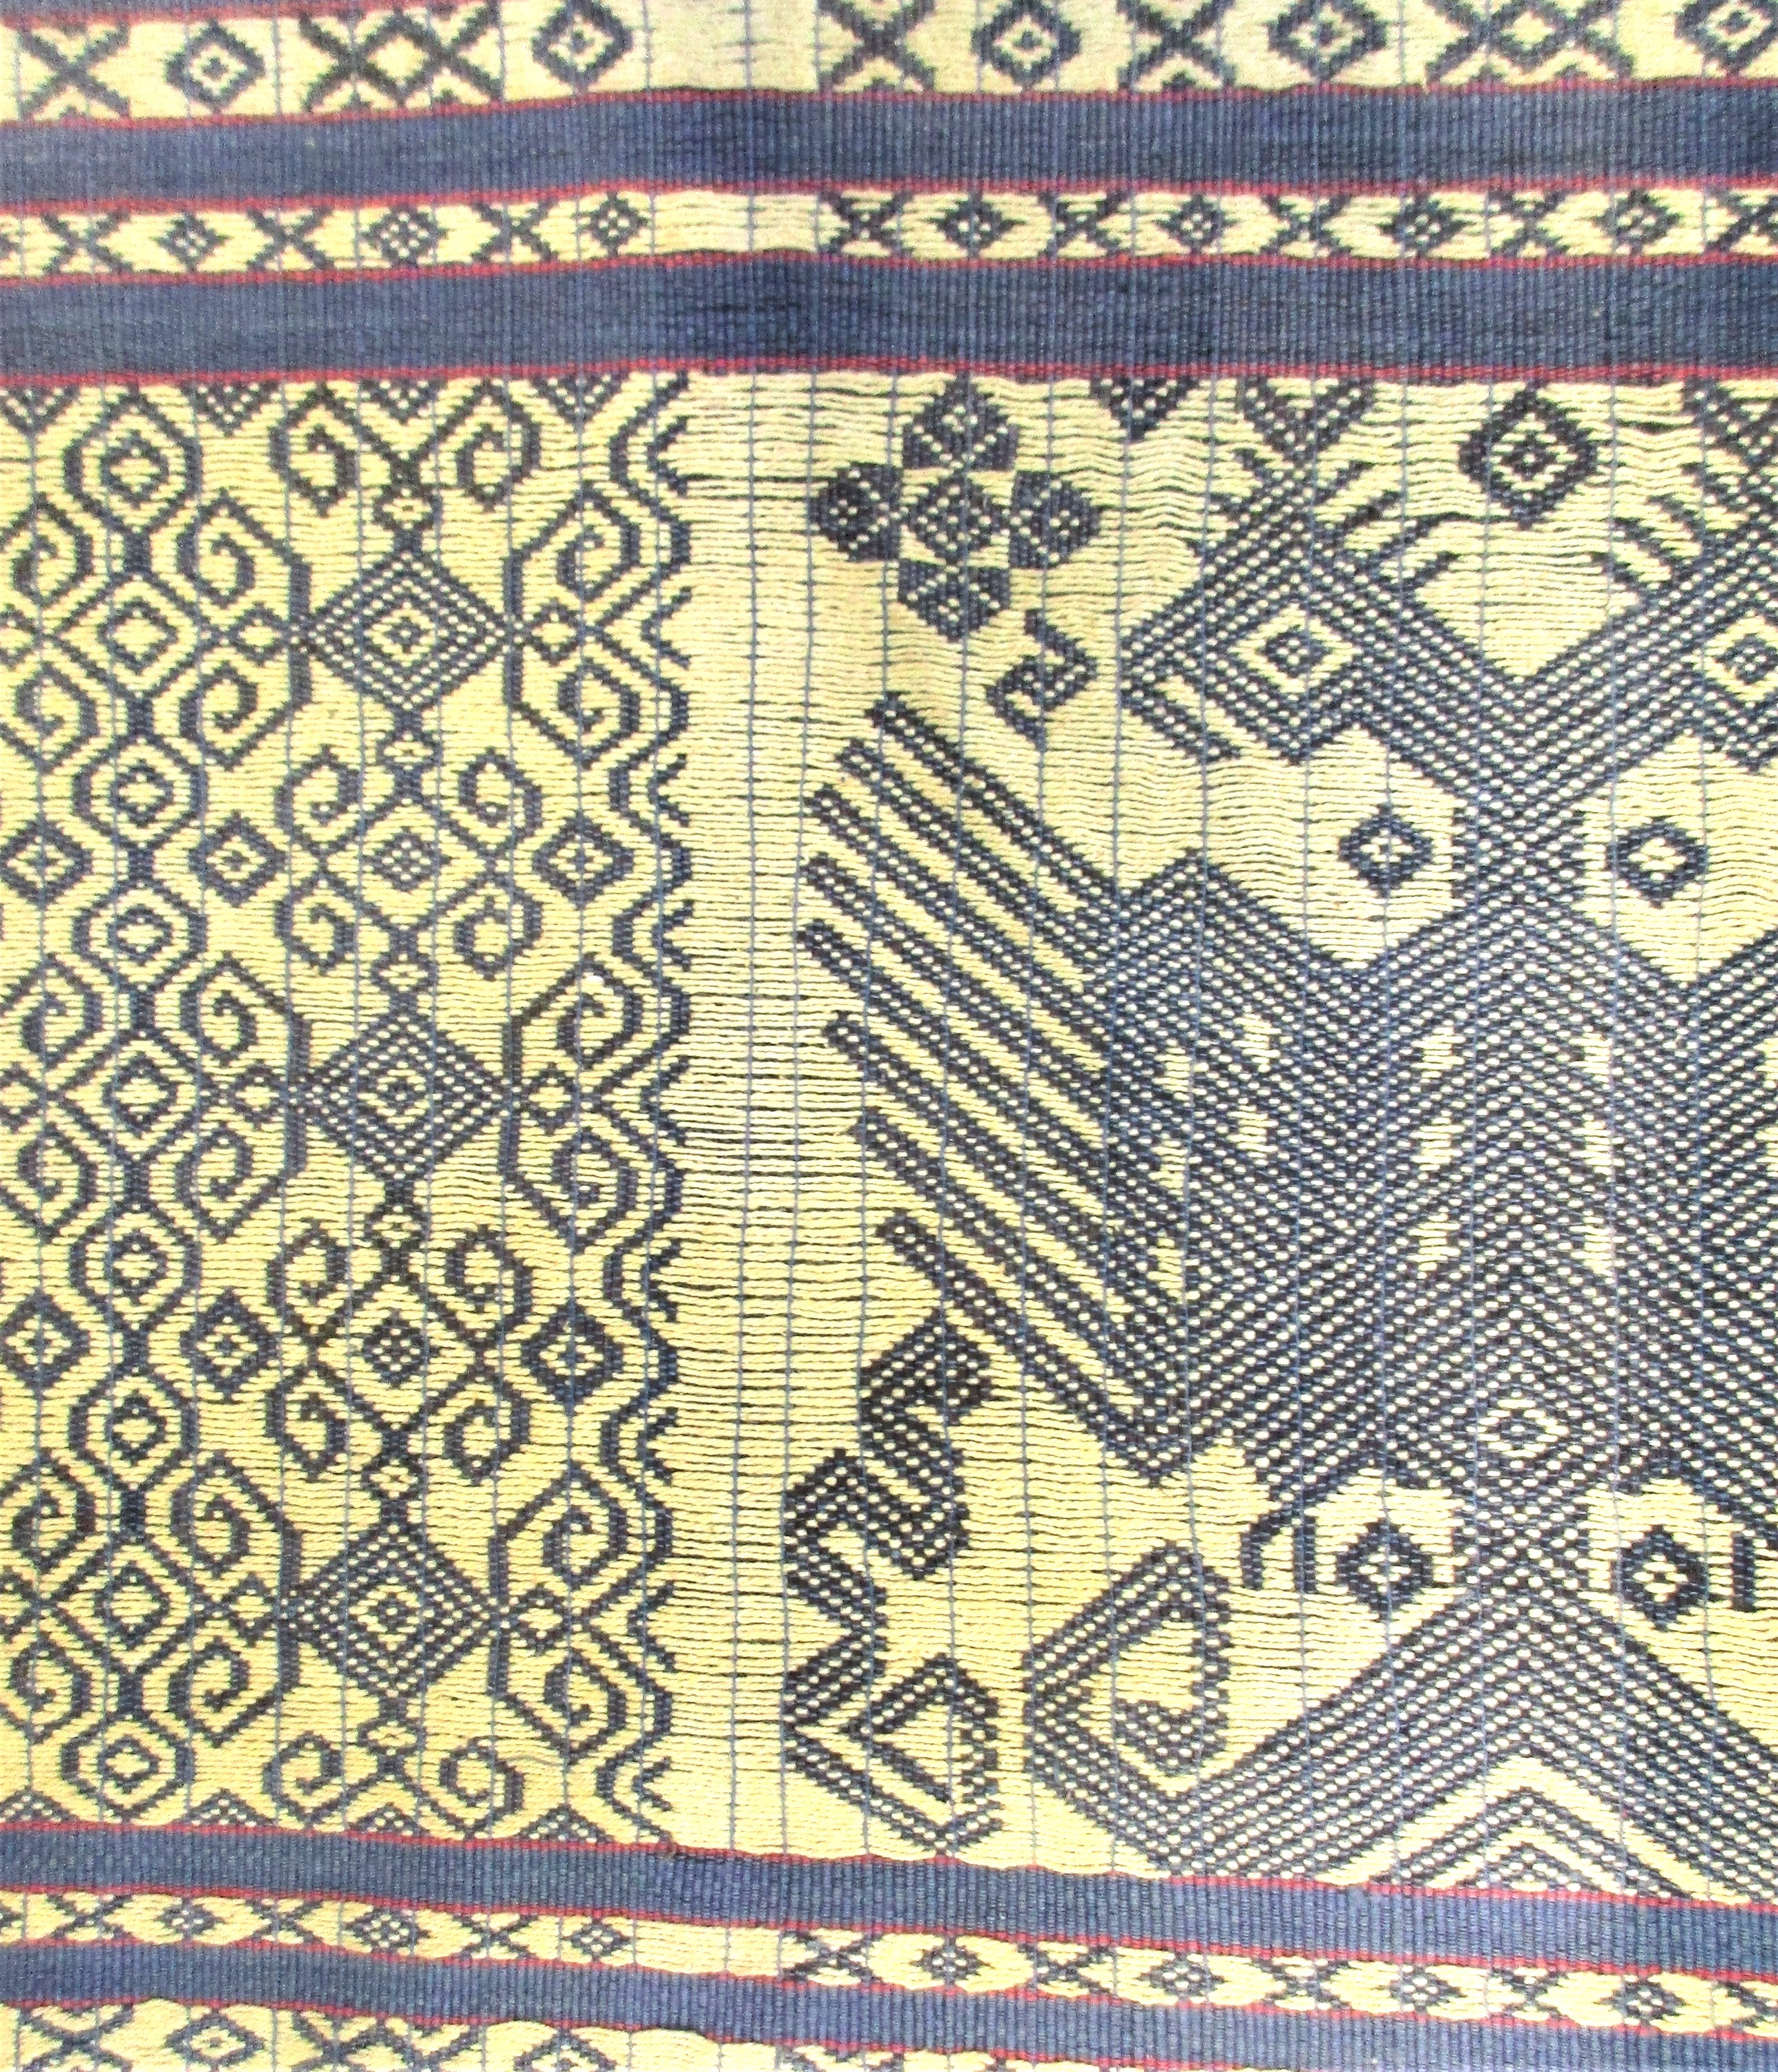 Ceremonial sash from east Sumba with a pattern of mythical birds and geometric patterns worked in - Image 2 of 2